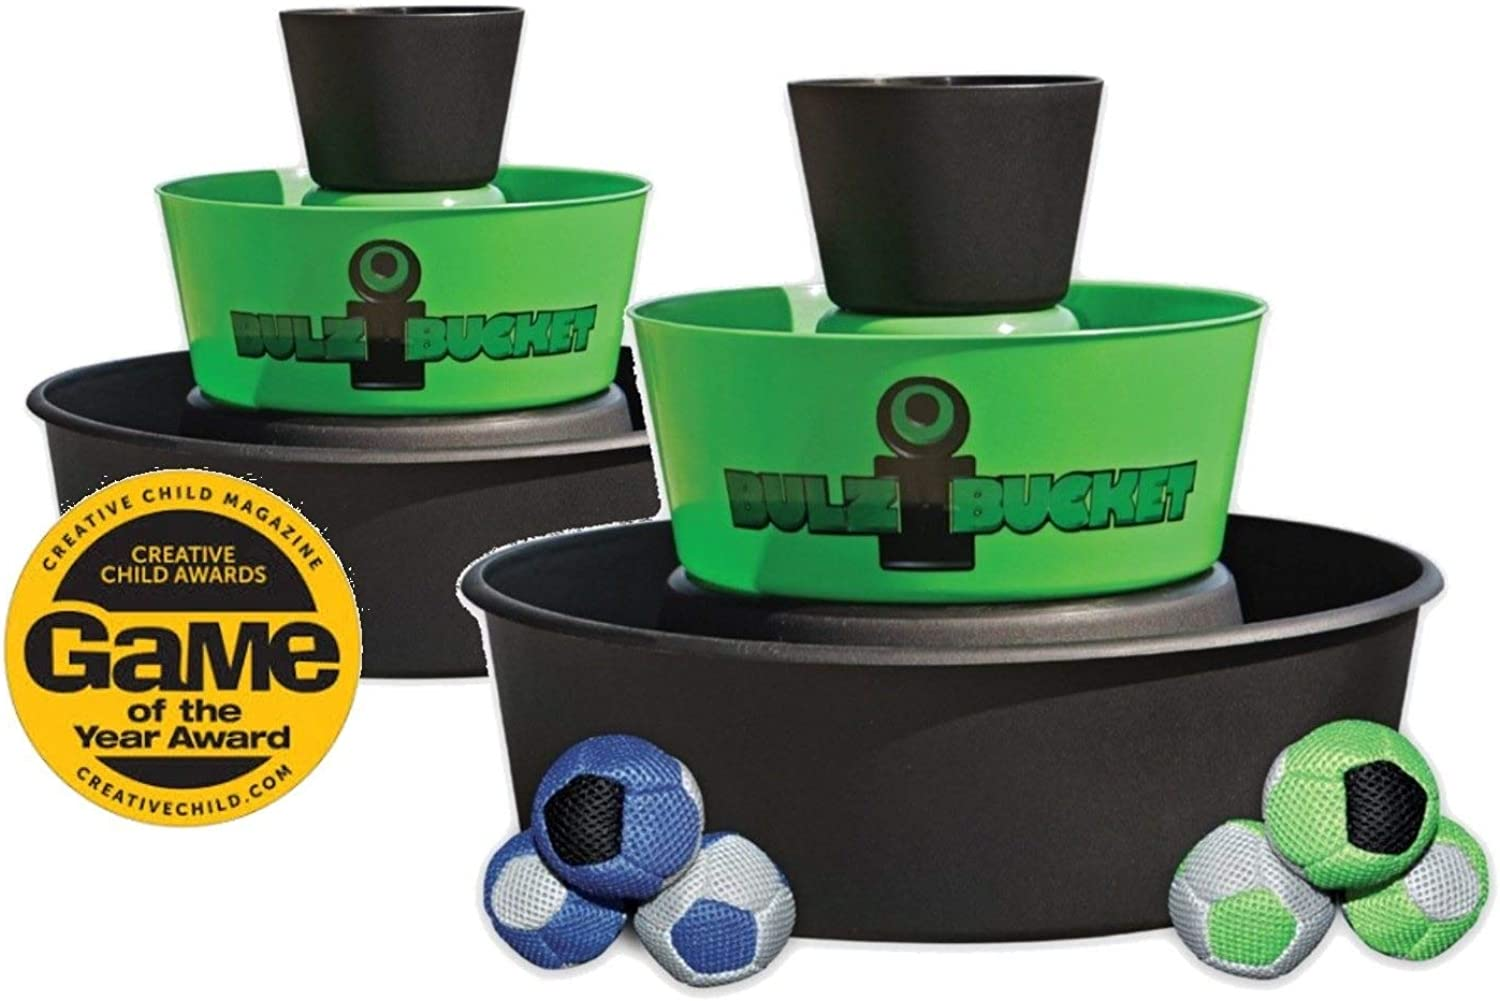 BULZiBUCKET Beach, Tailgate, Camping, Yard Game Indoor Outdoor by Kid Agains